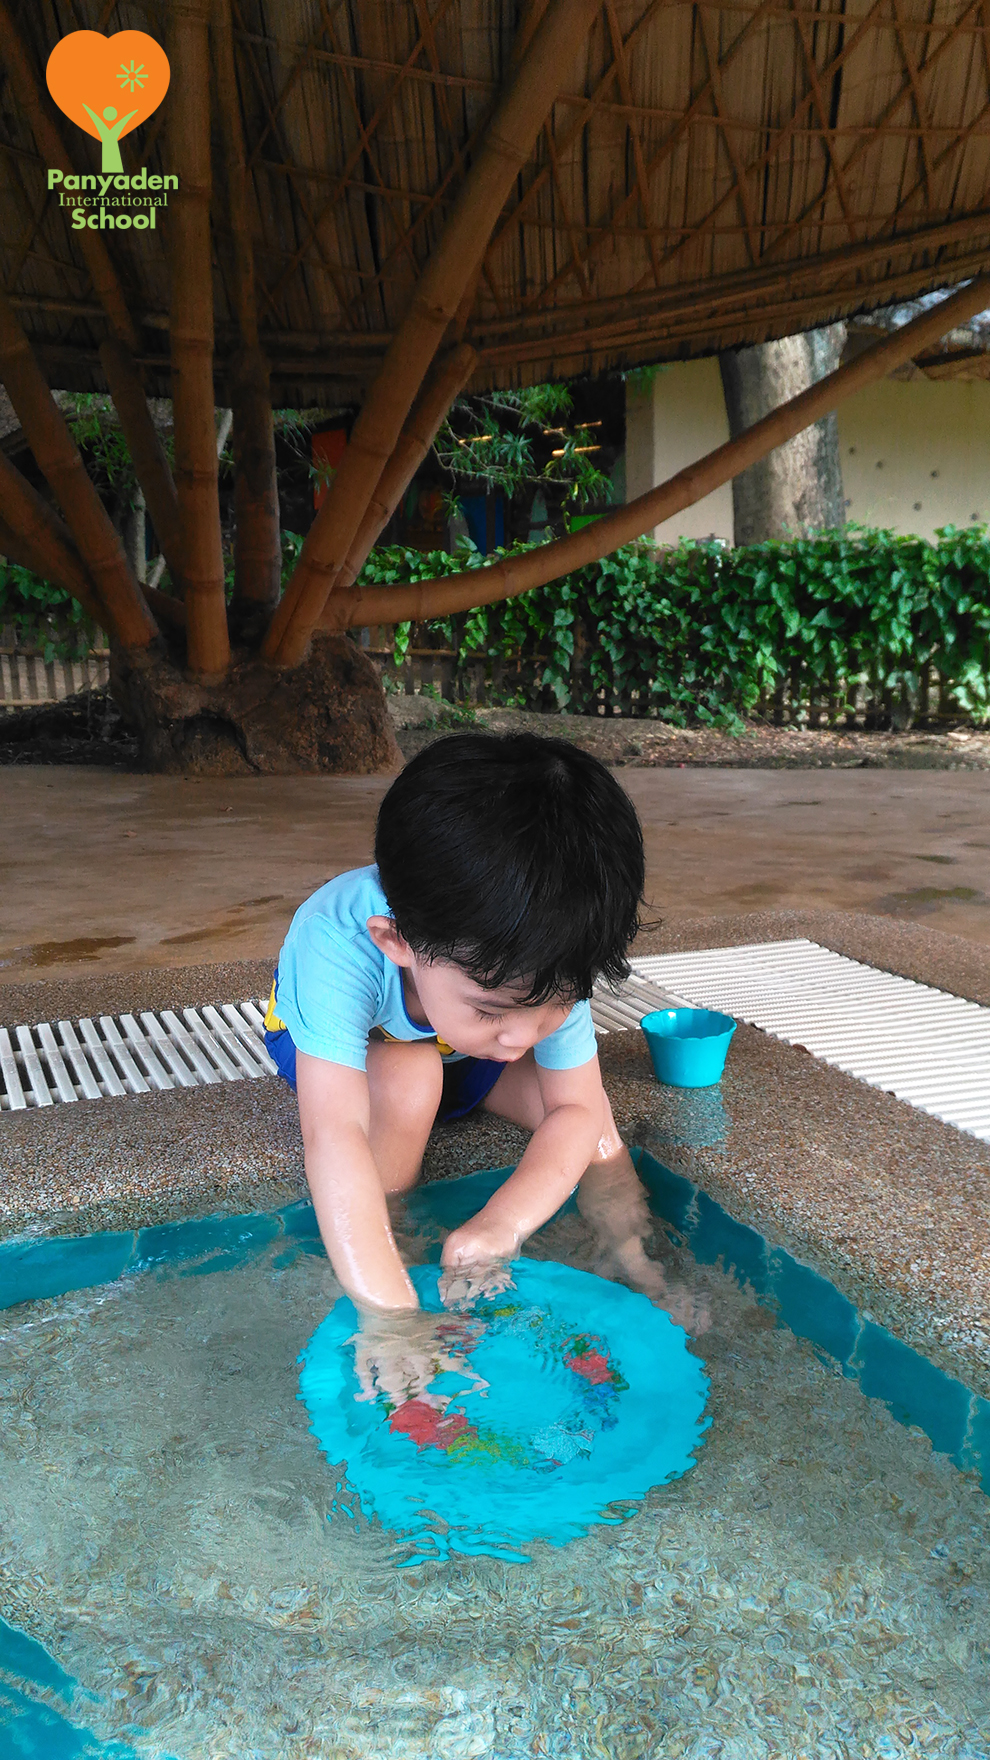 Panyaden swimming club after school for nursery and kindergarten childern